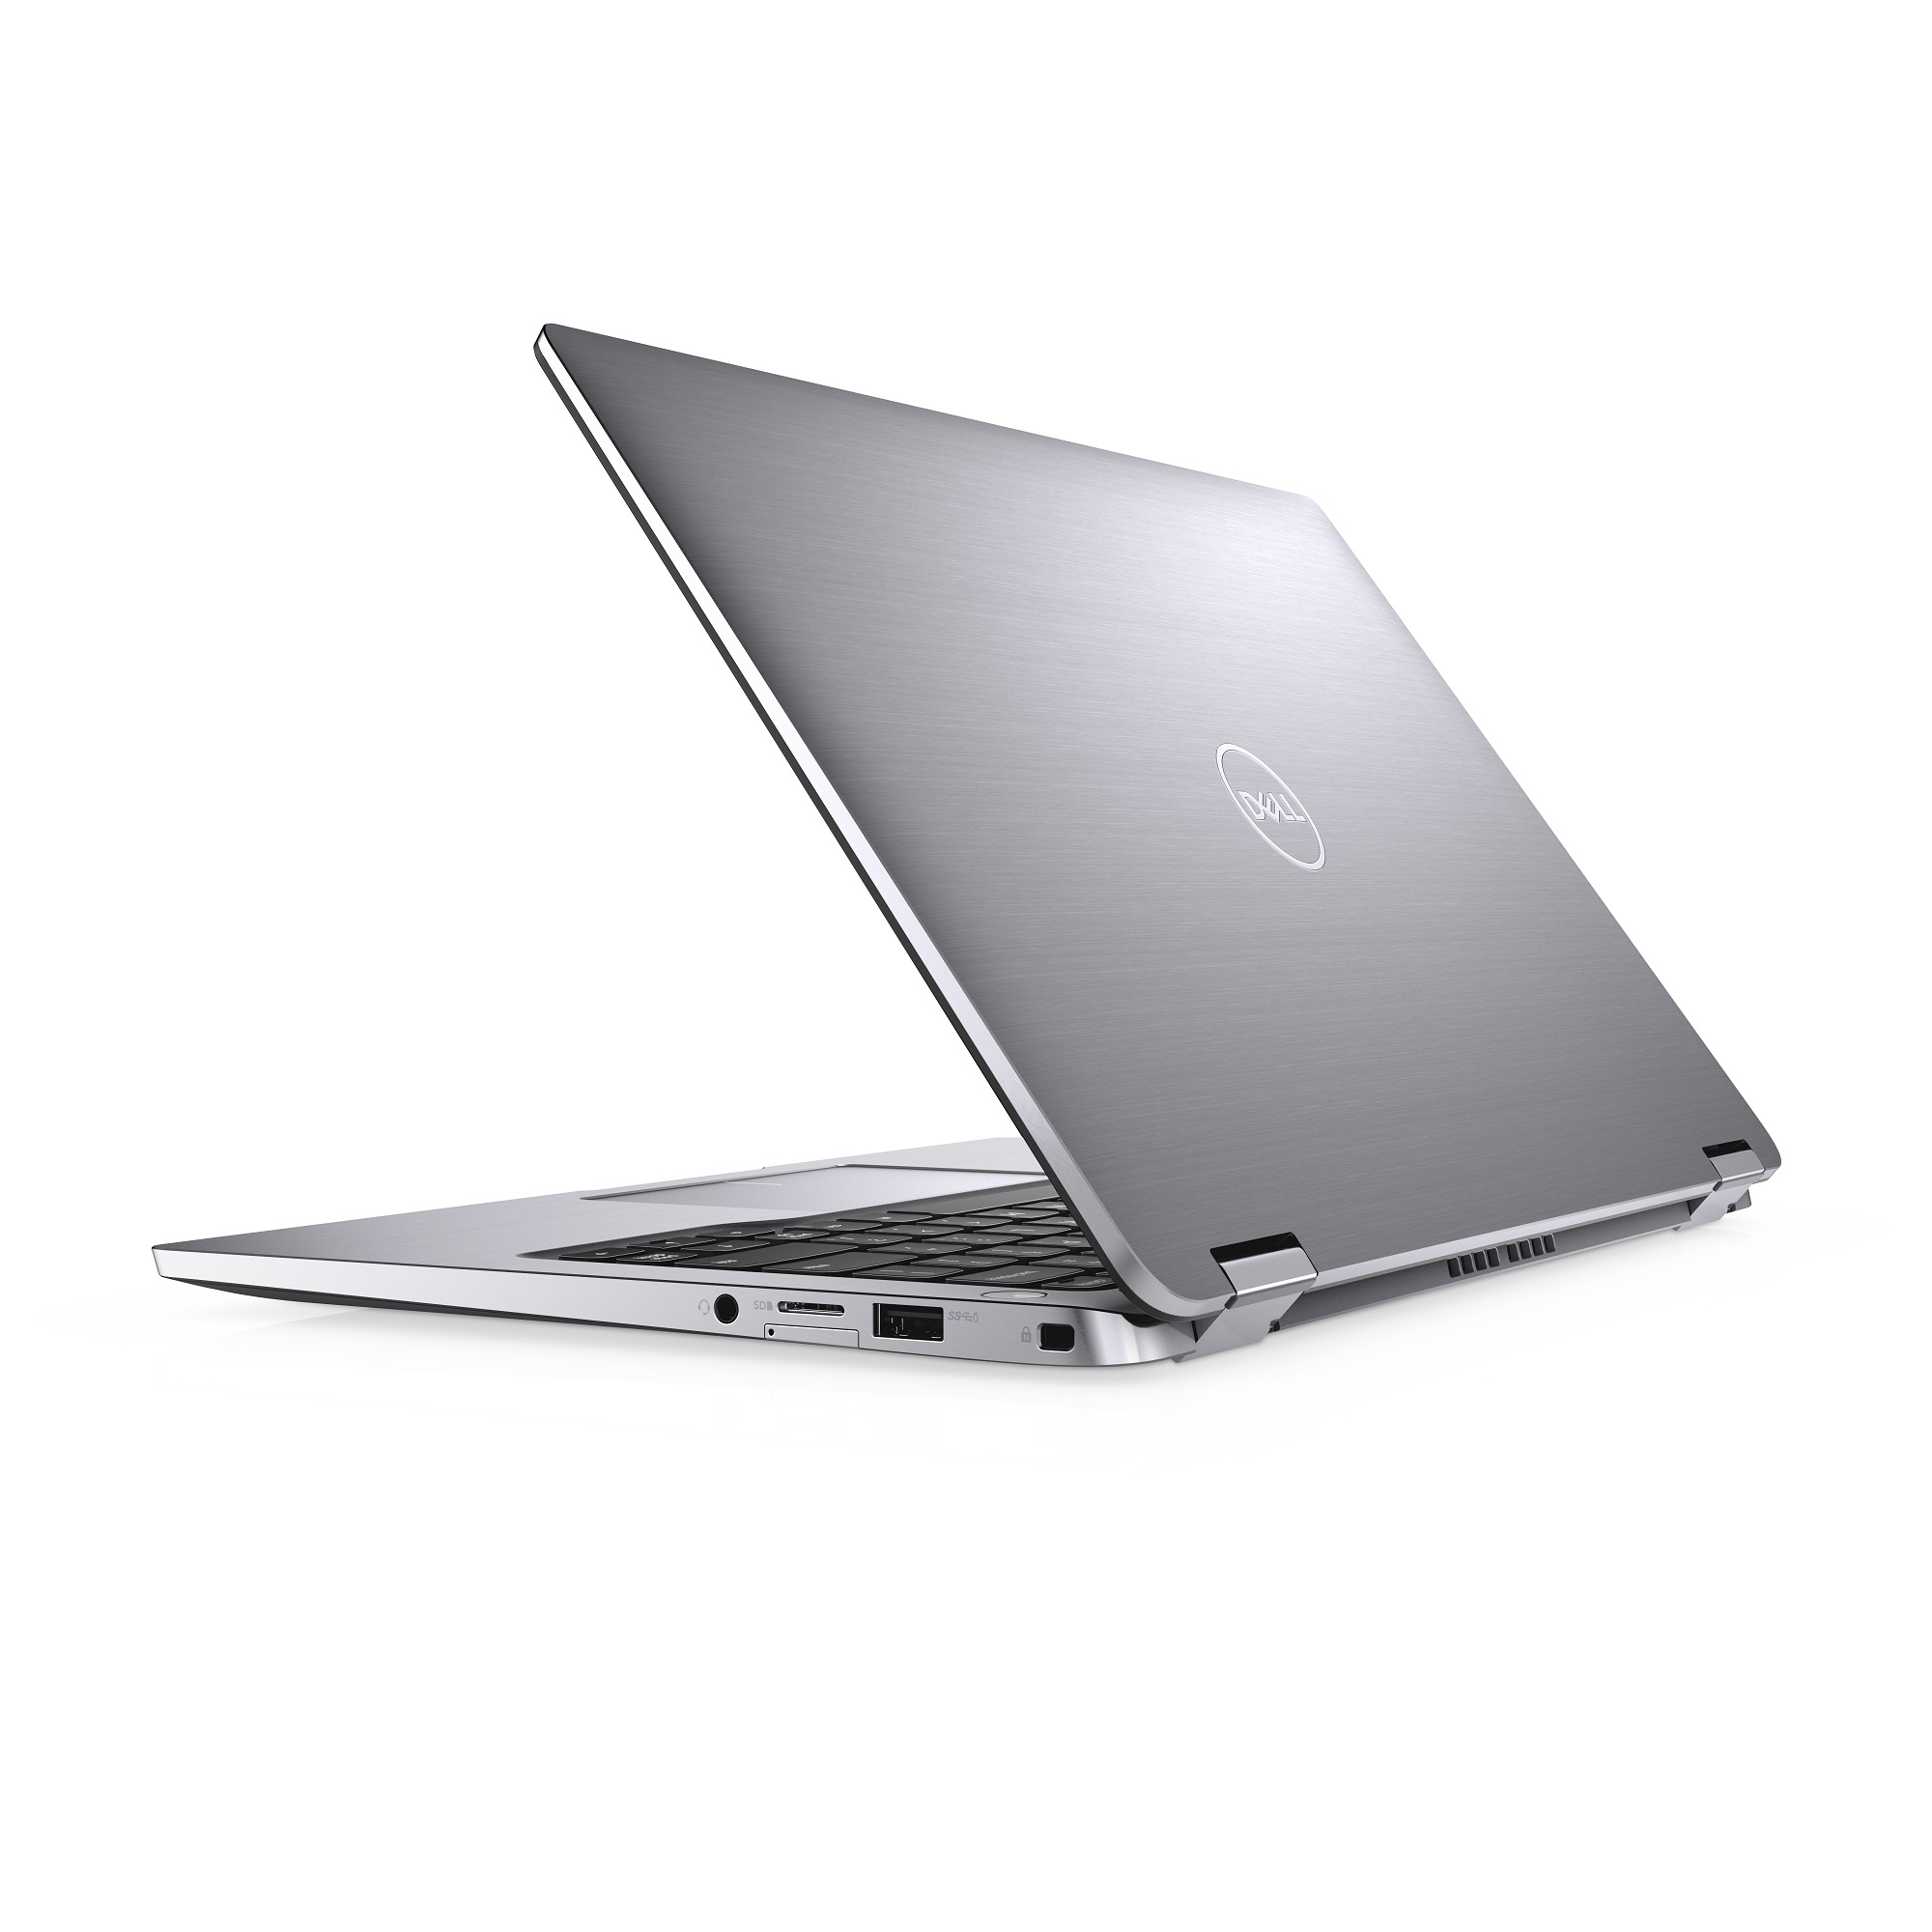 Laptop DELL Latitude 9410 2in1 14 FHD Touch i5-10310U 16GB 512GB SSD BK LTE W10P 3YBWOS